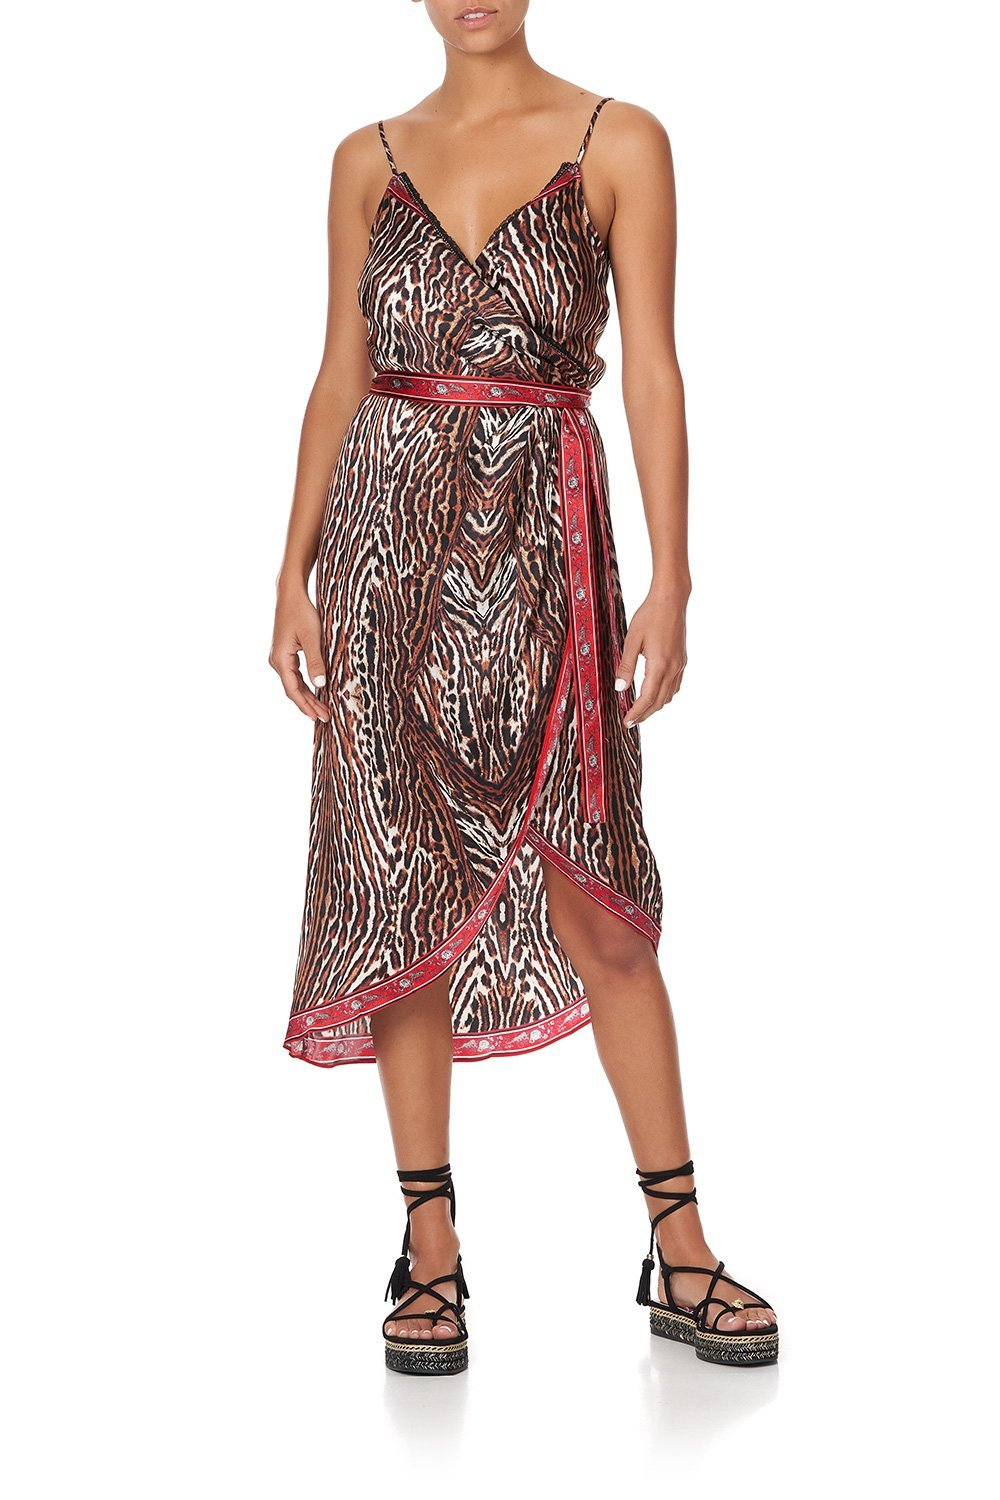 ASYMMETRICAL WRAP DRESS WITH STRAPS PIRATE PUNK